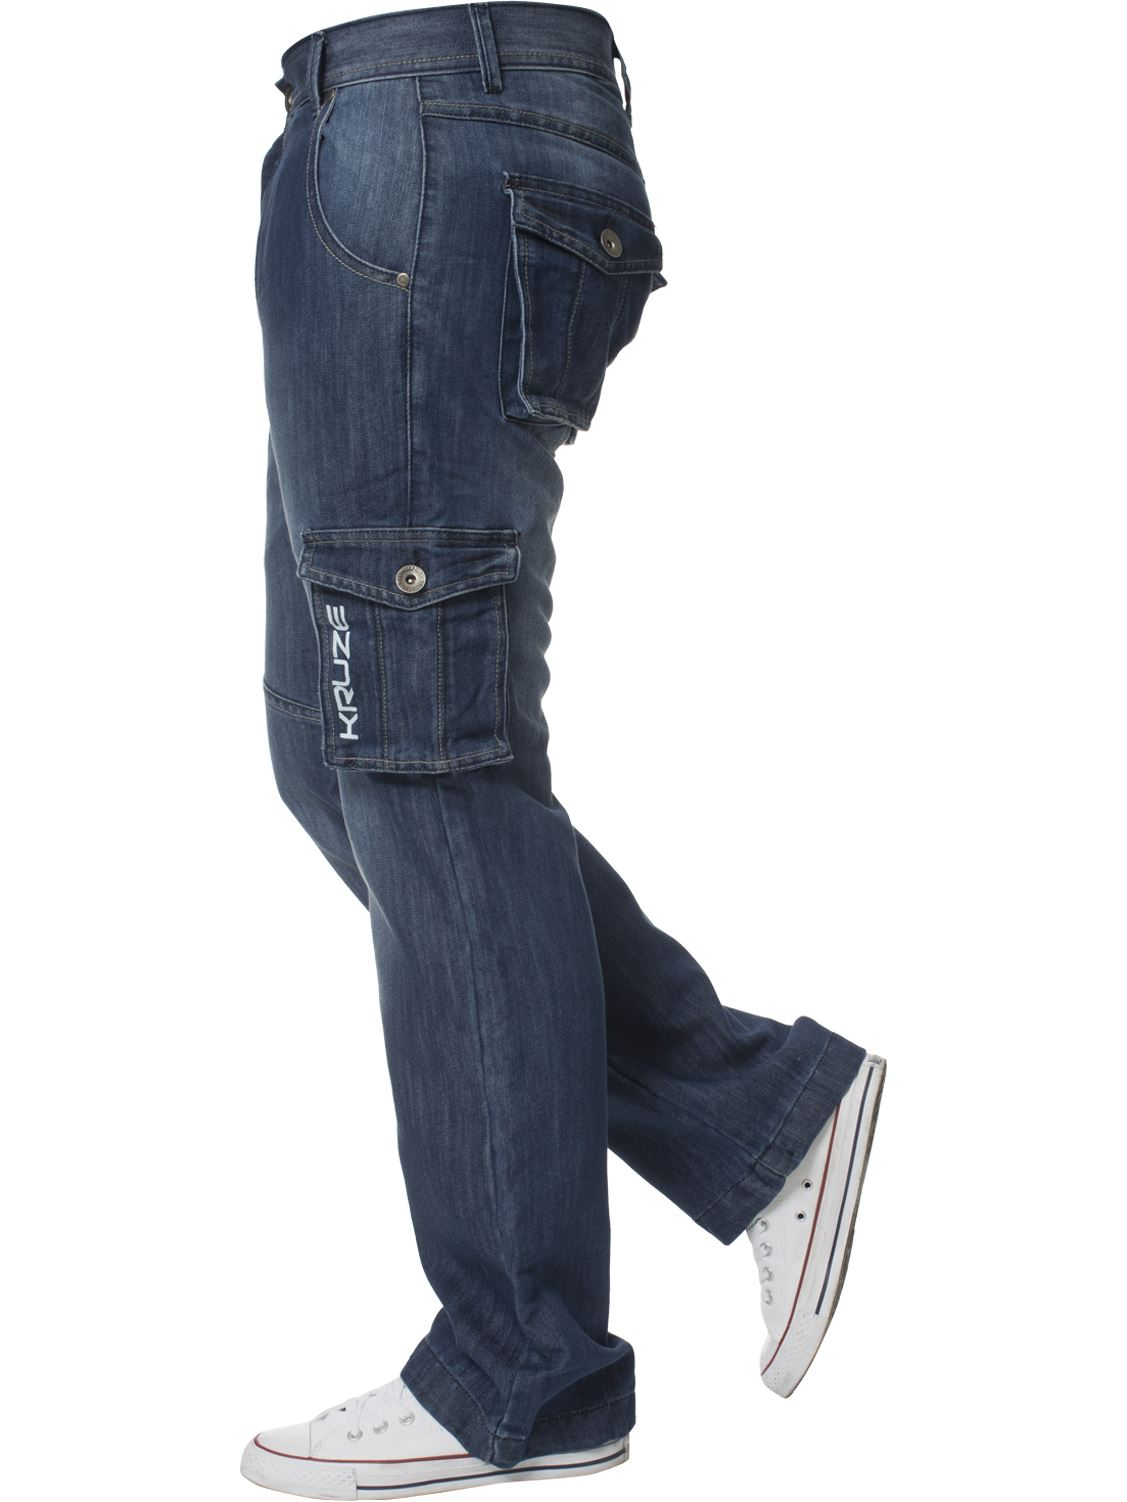 Mens-Cargo-Jeans-Combat-Trousers-Heavy-Duty-Work-Casual-Big-Tall-Denim-Pants thumbnail 59